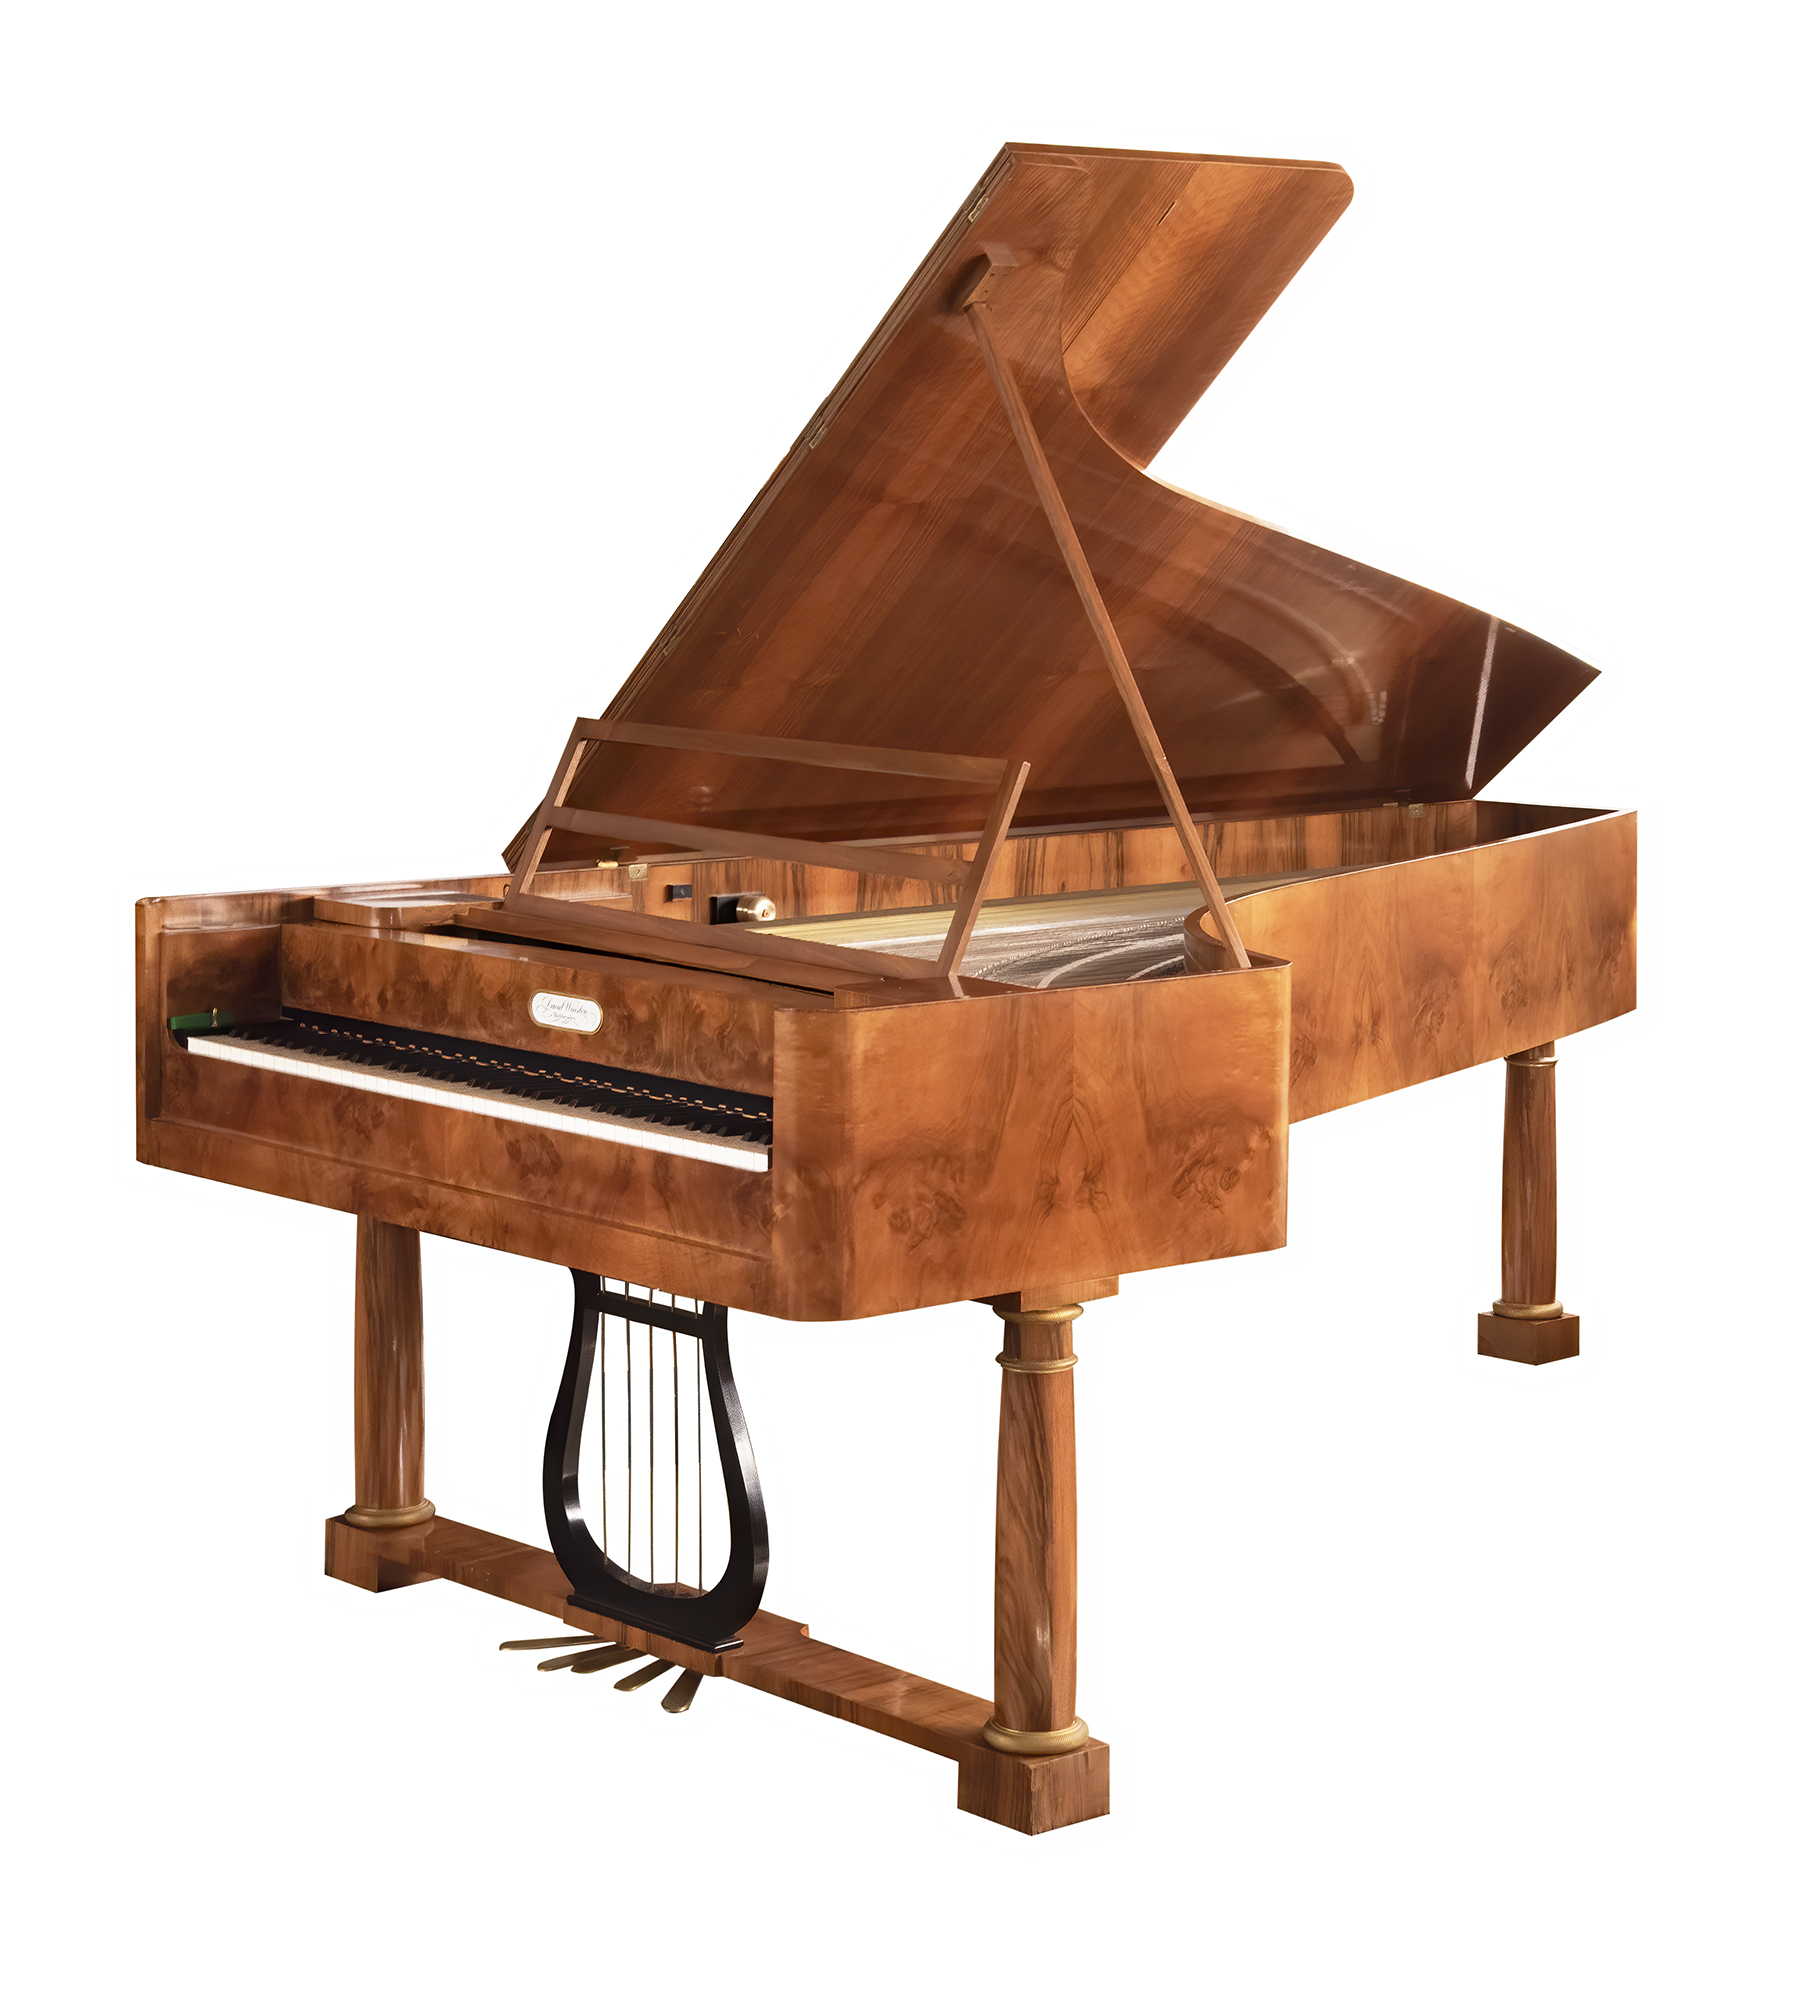 Viennese fortepiano